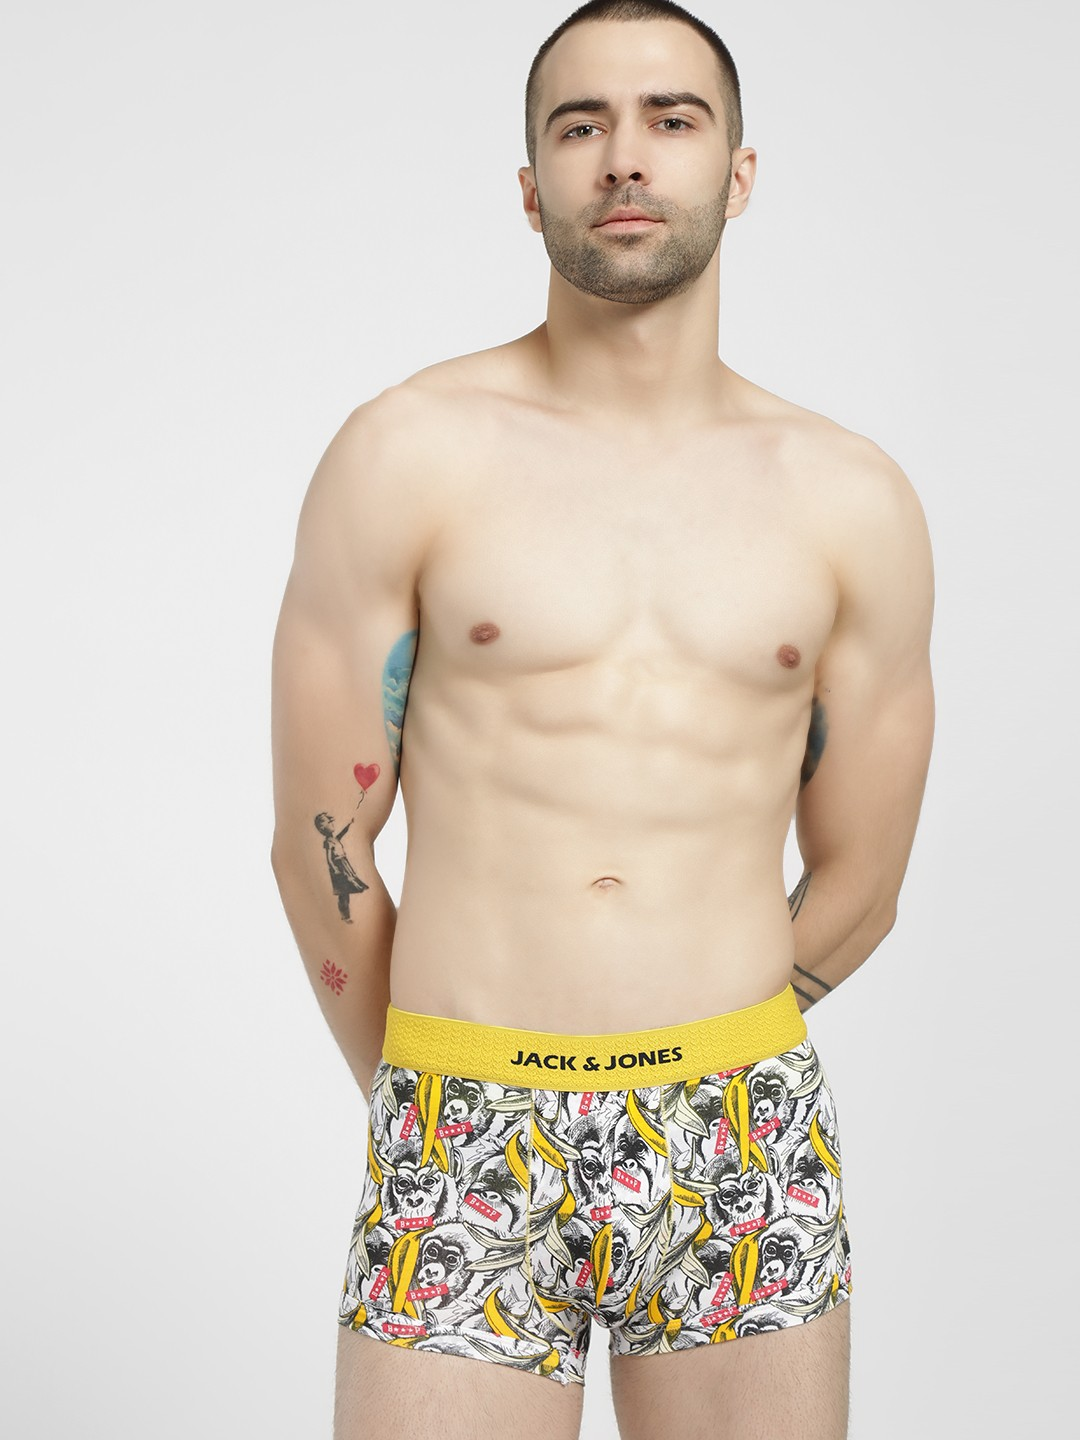 Jack & Jones Multi Monkey Beep Printed Brazilian Trunks 1